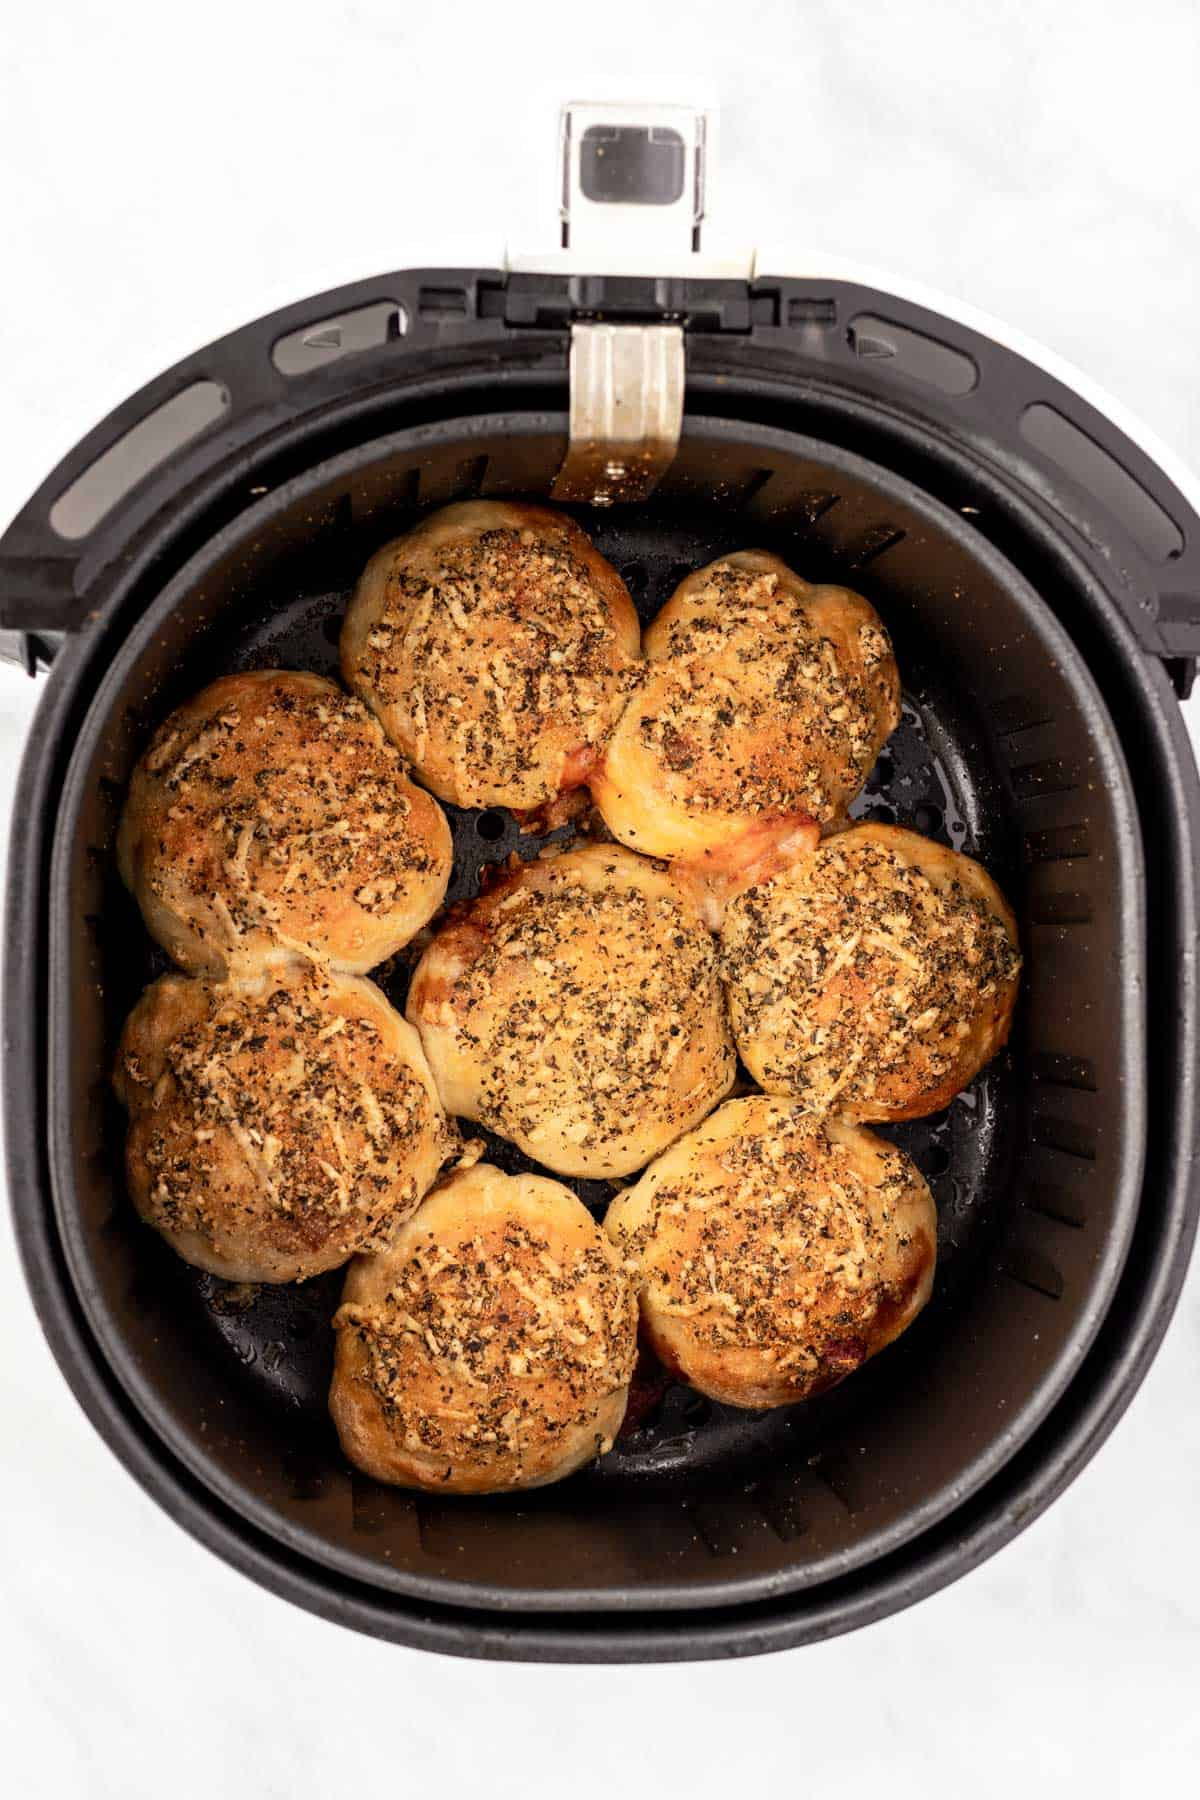 Cooked golden brown pizza rolls in the air fryer basket.